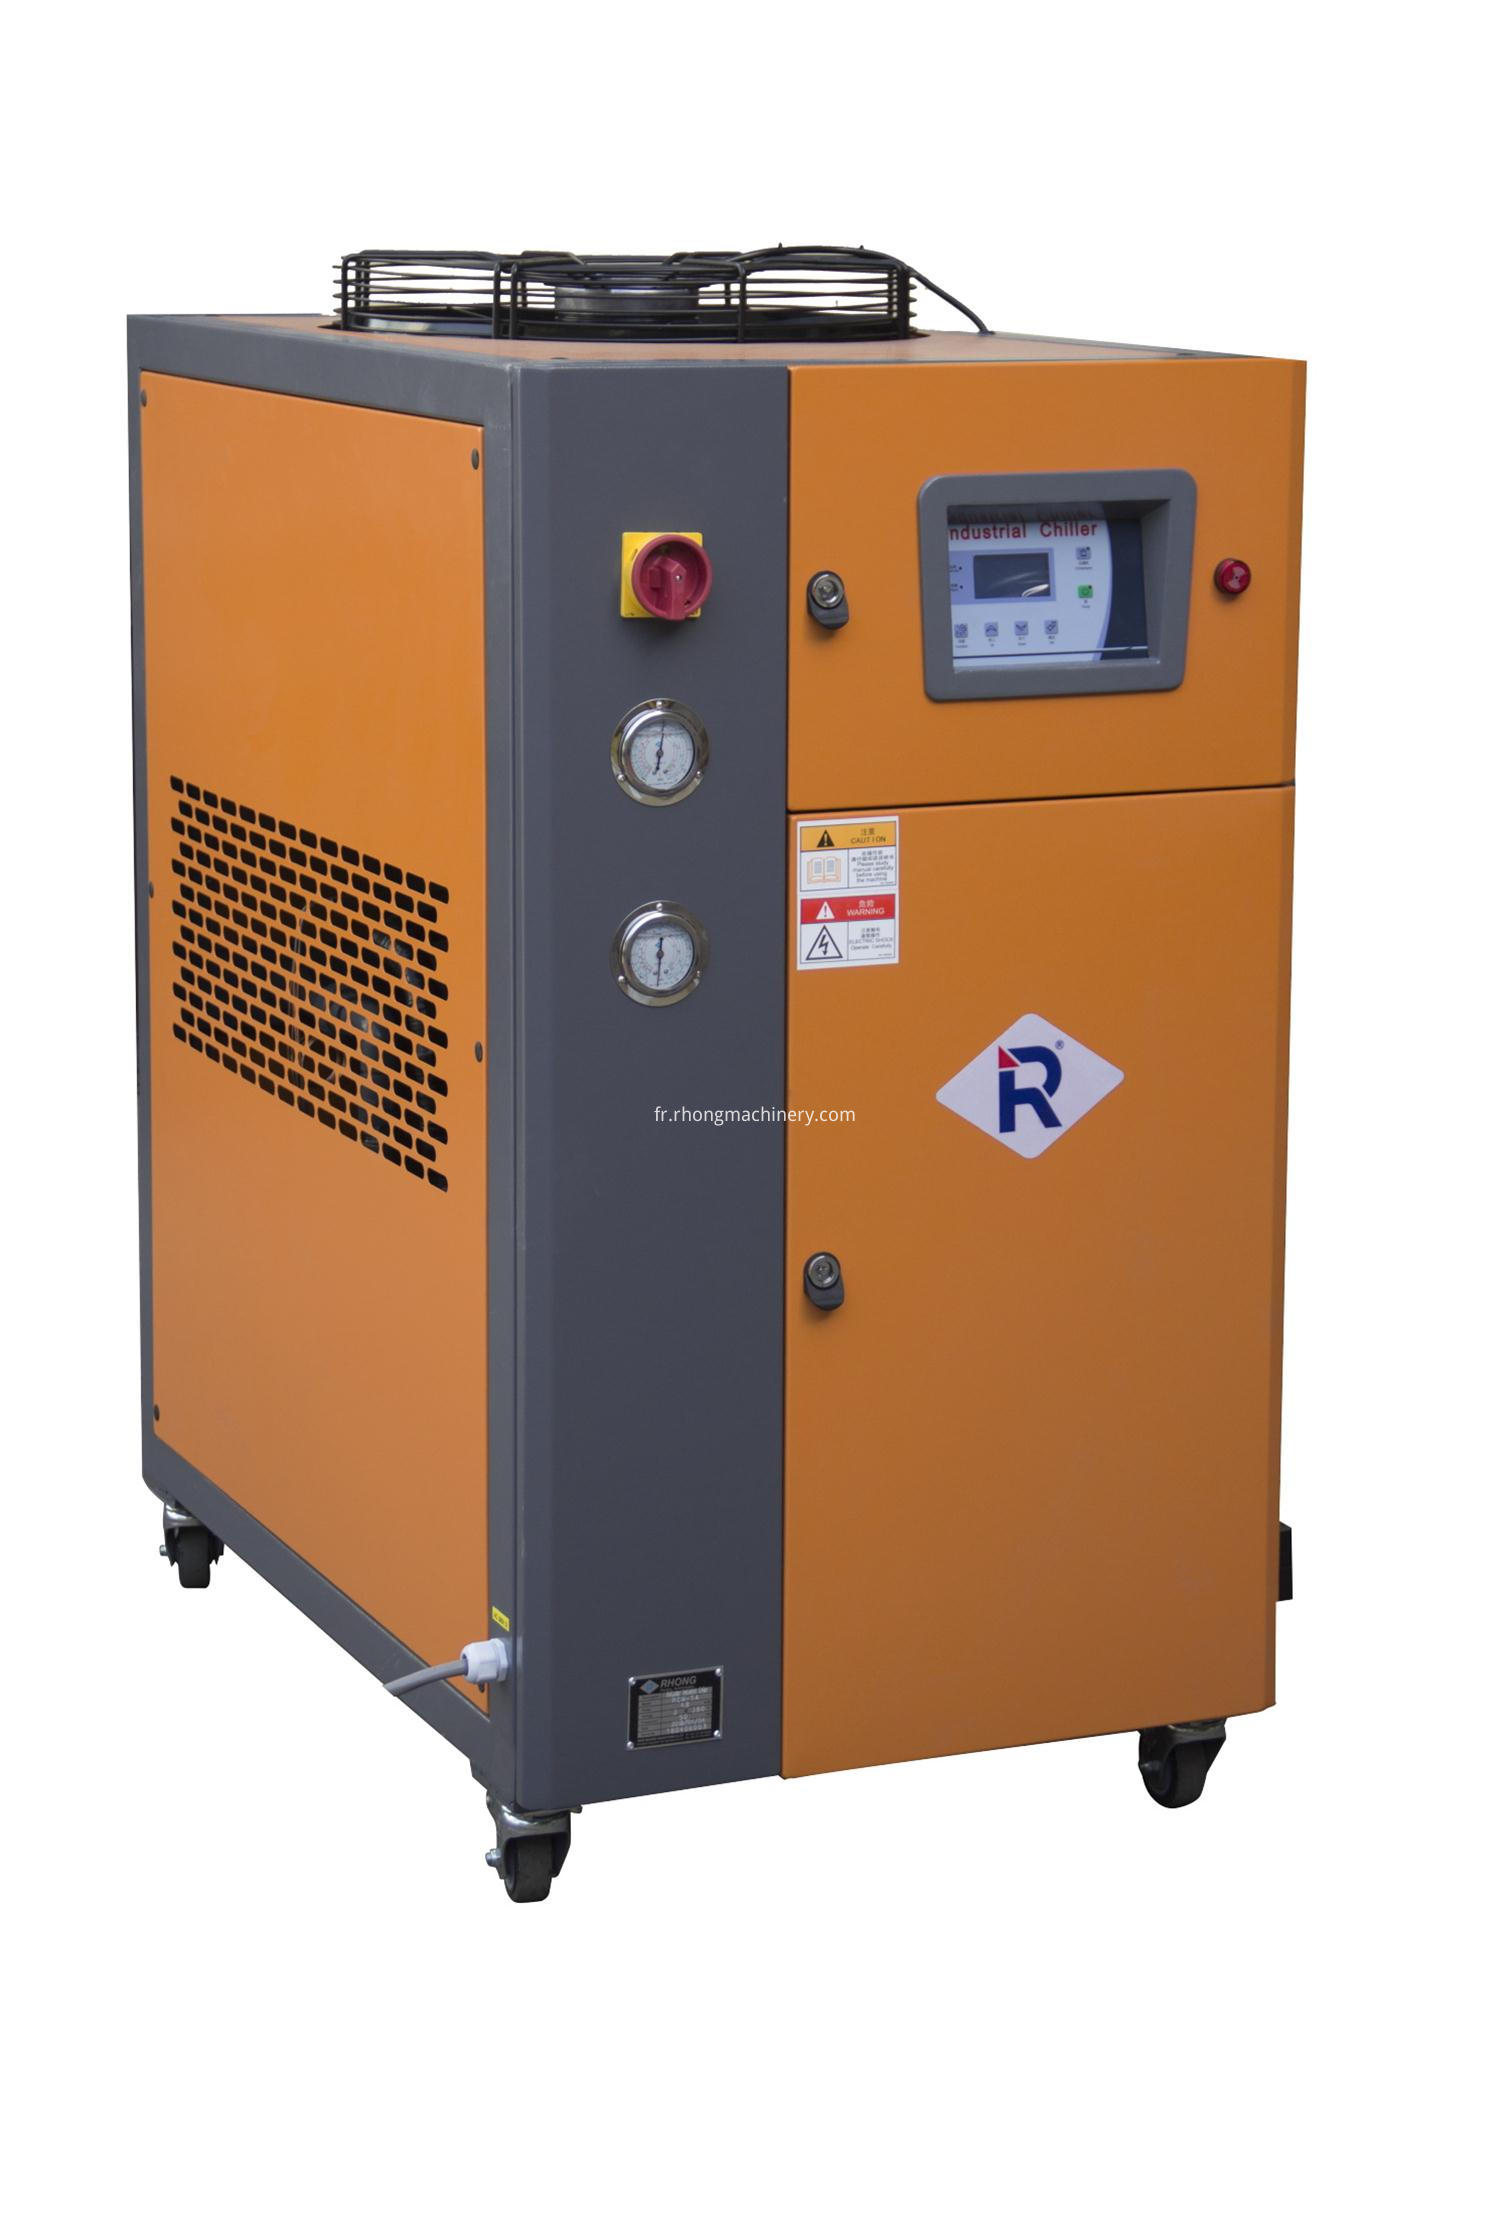 RCM-A RHONG AIR CHILLER